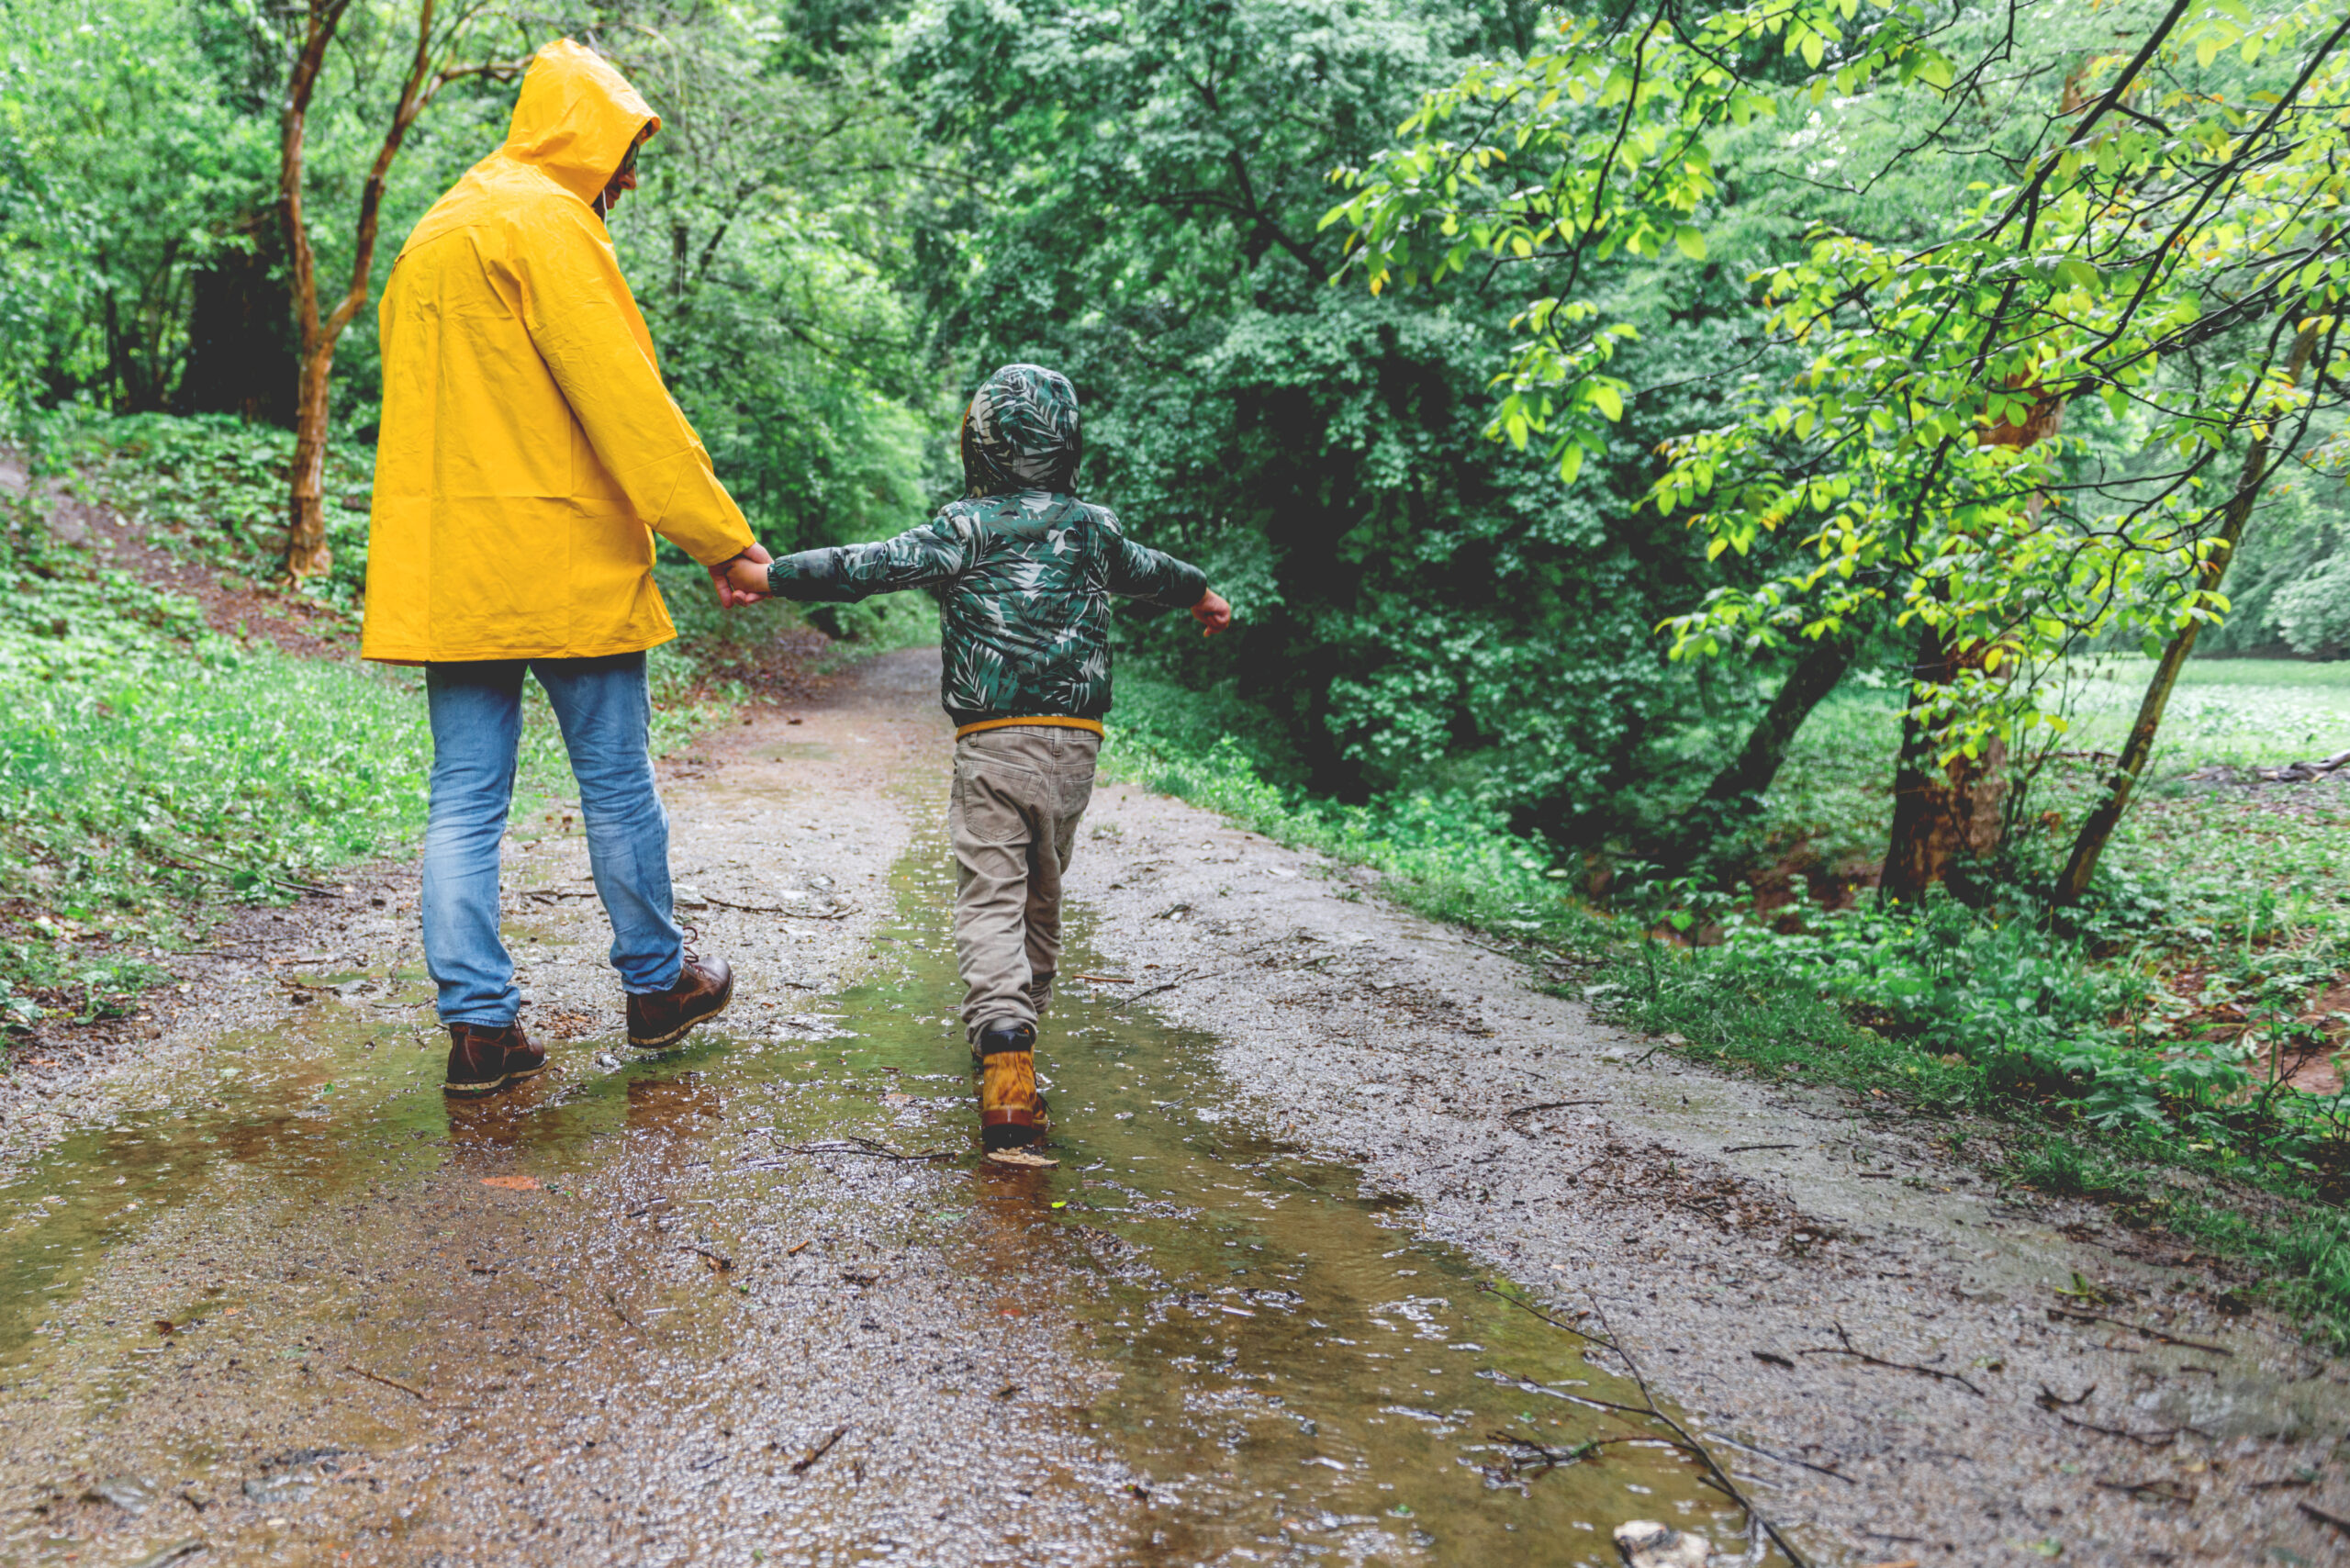 Father and son walking in the rain